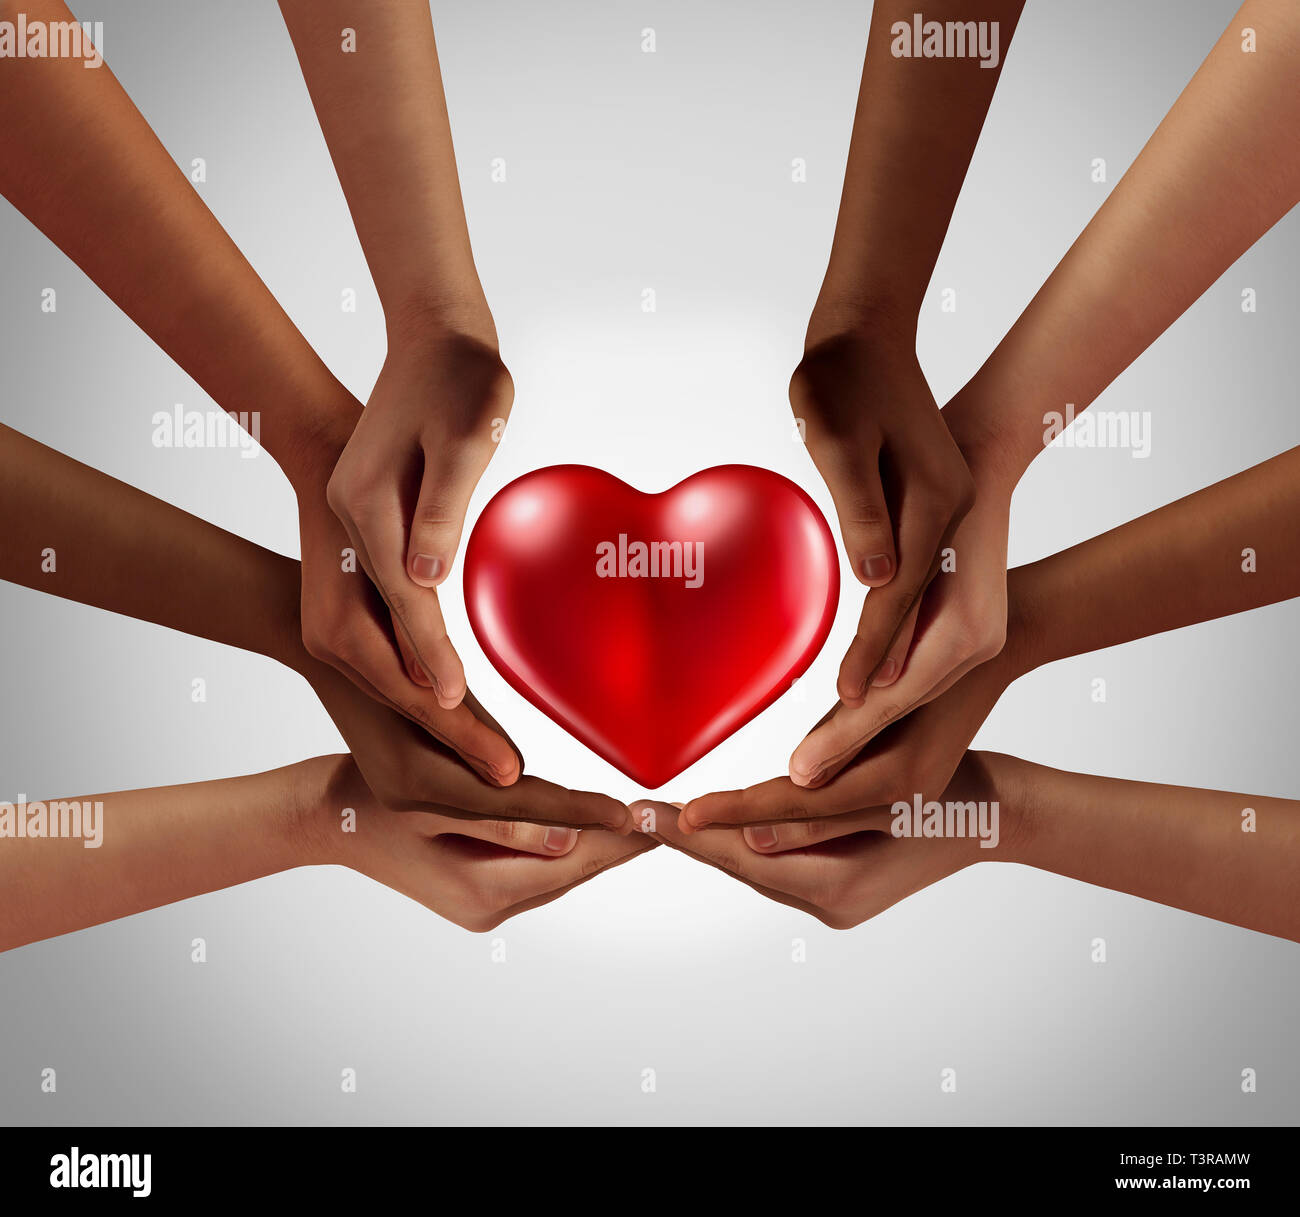 Philanthropy and philanthropic community of sharing and kind support as a symbol for social charitable group or kindness psychology. Stock Photo